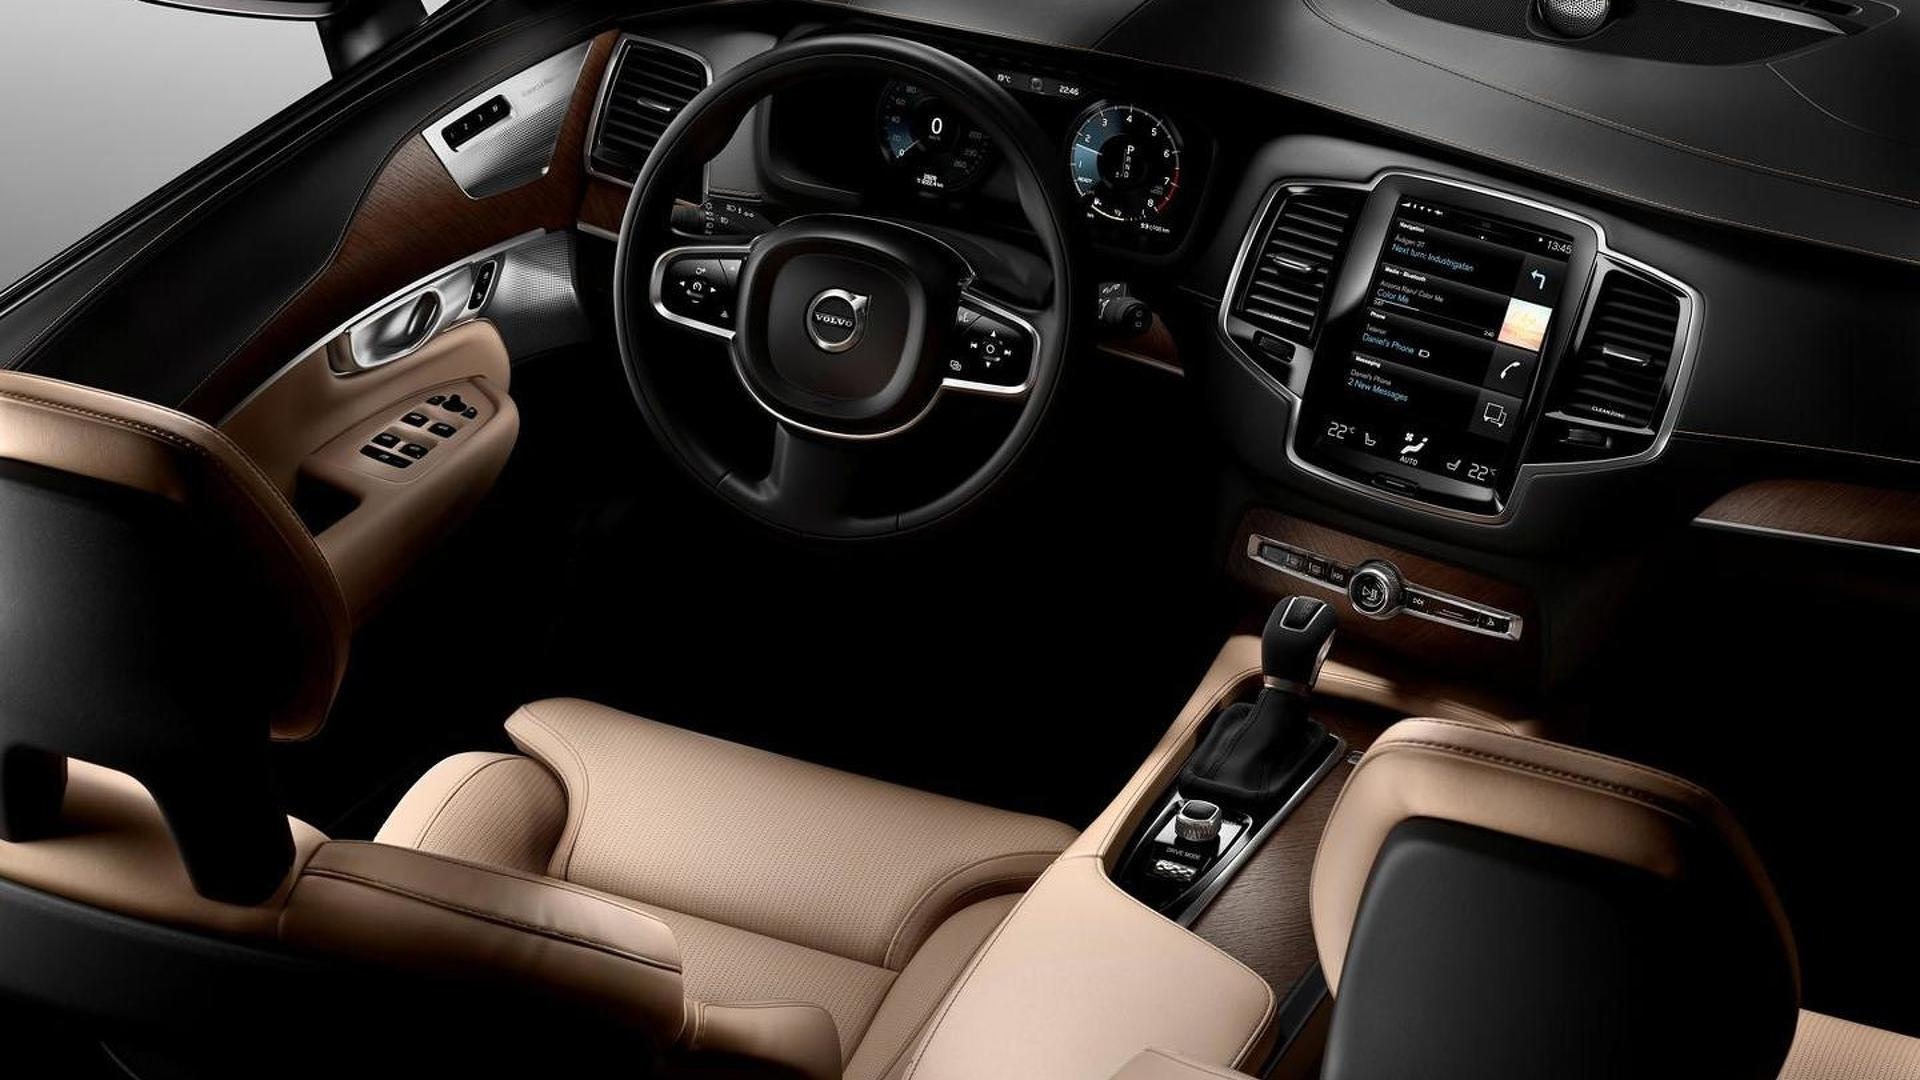 Volvo working on luxurious XC90 for China